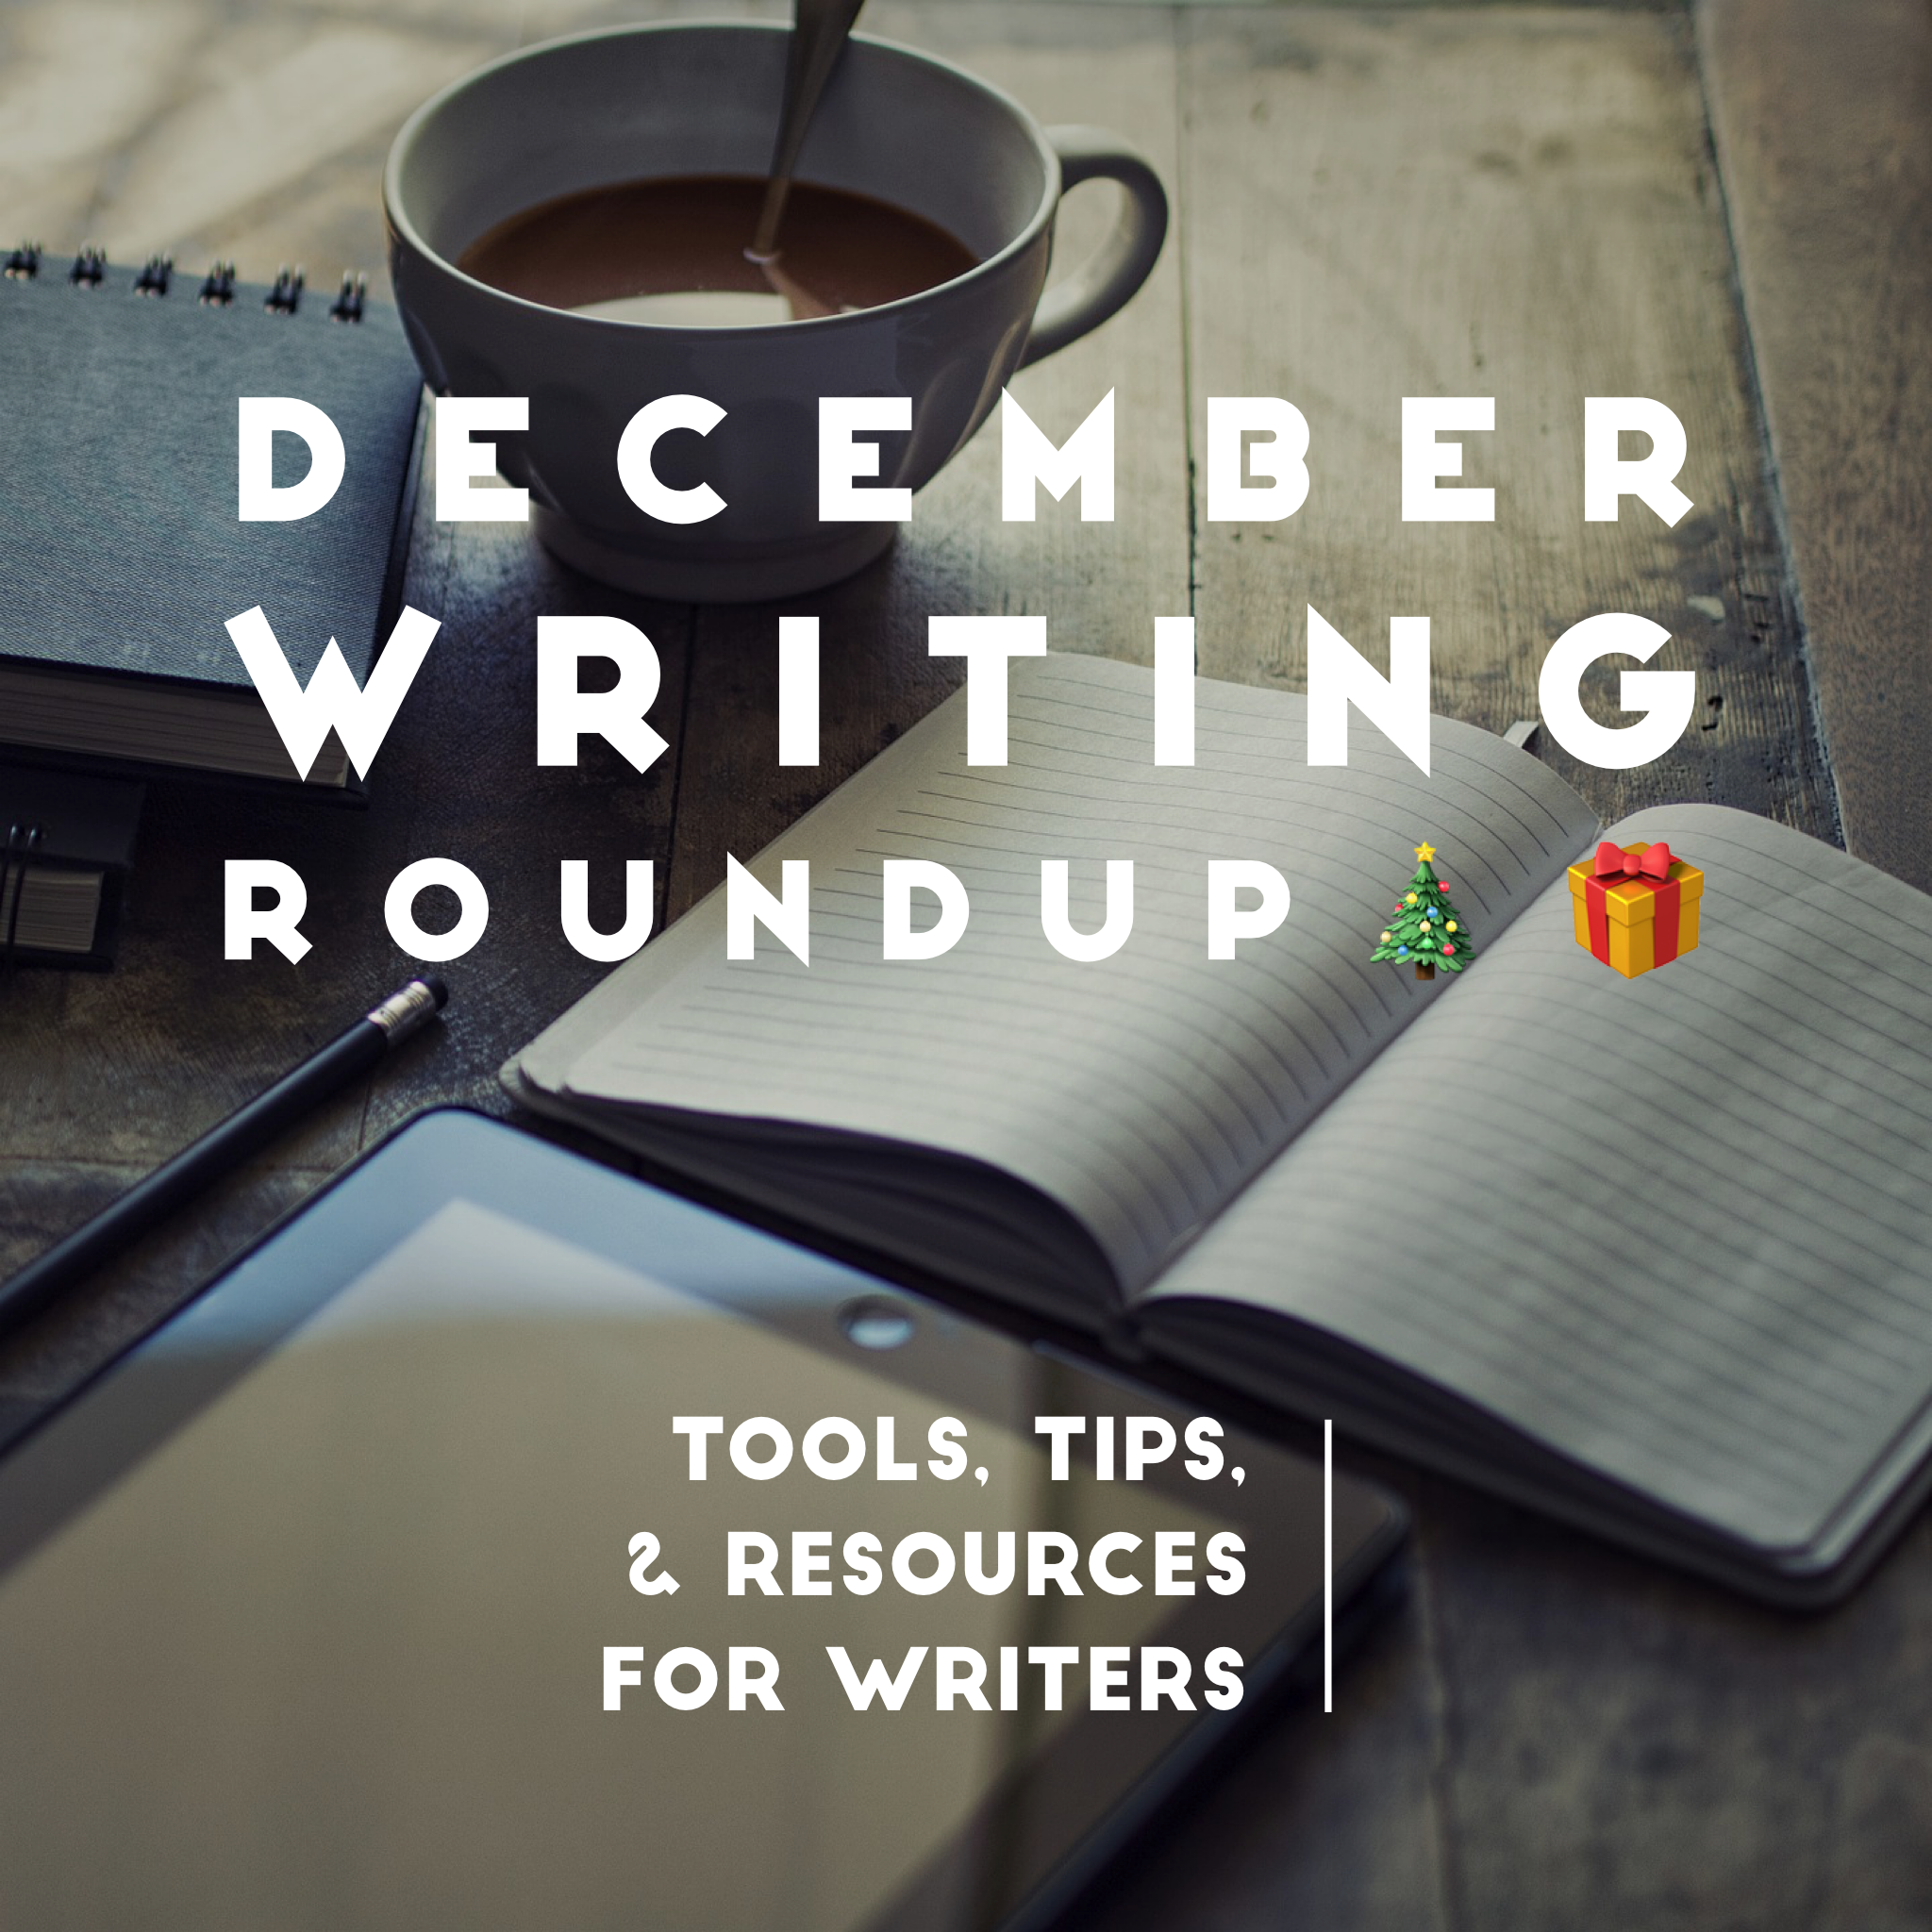 December Writing Roundup by Diana Tyler